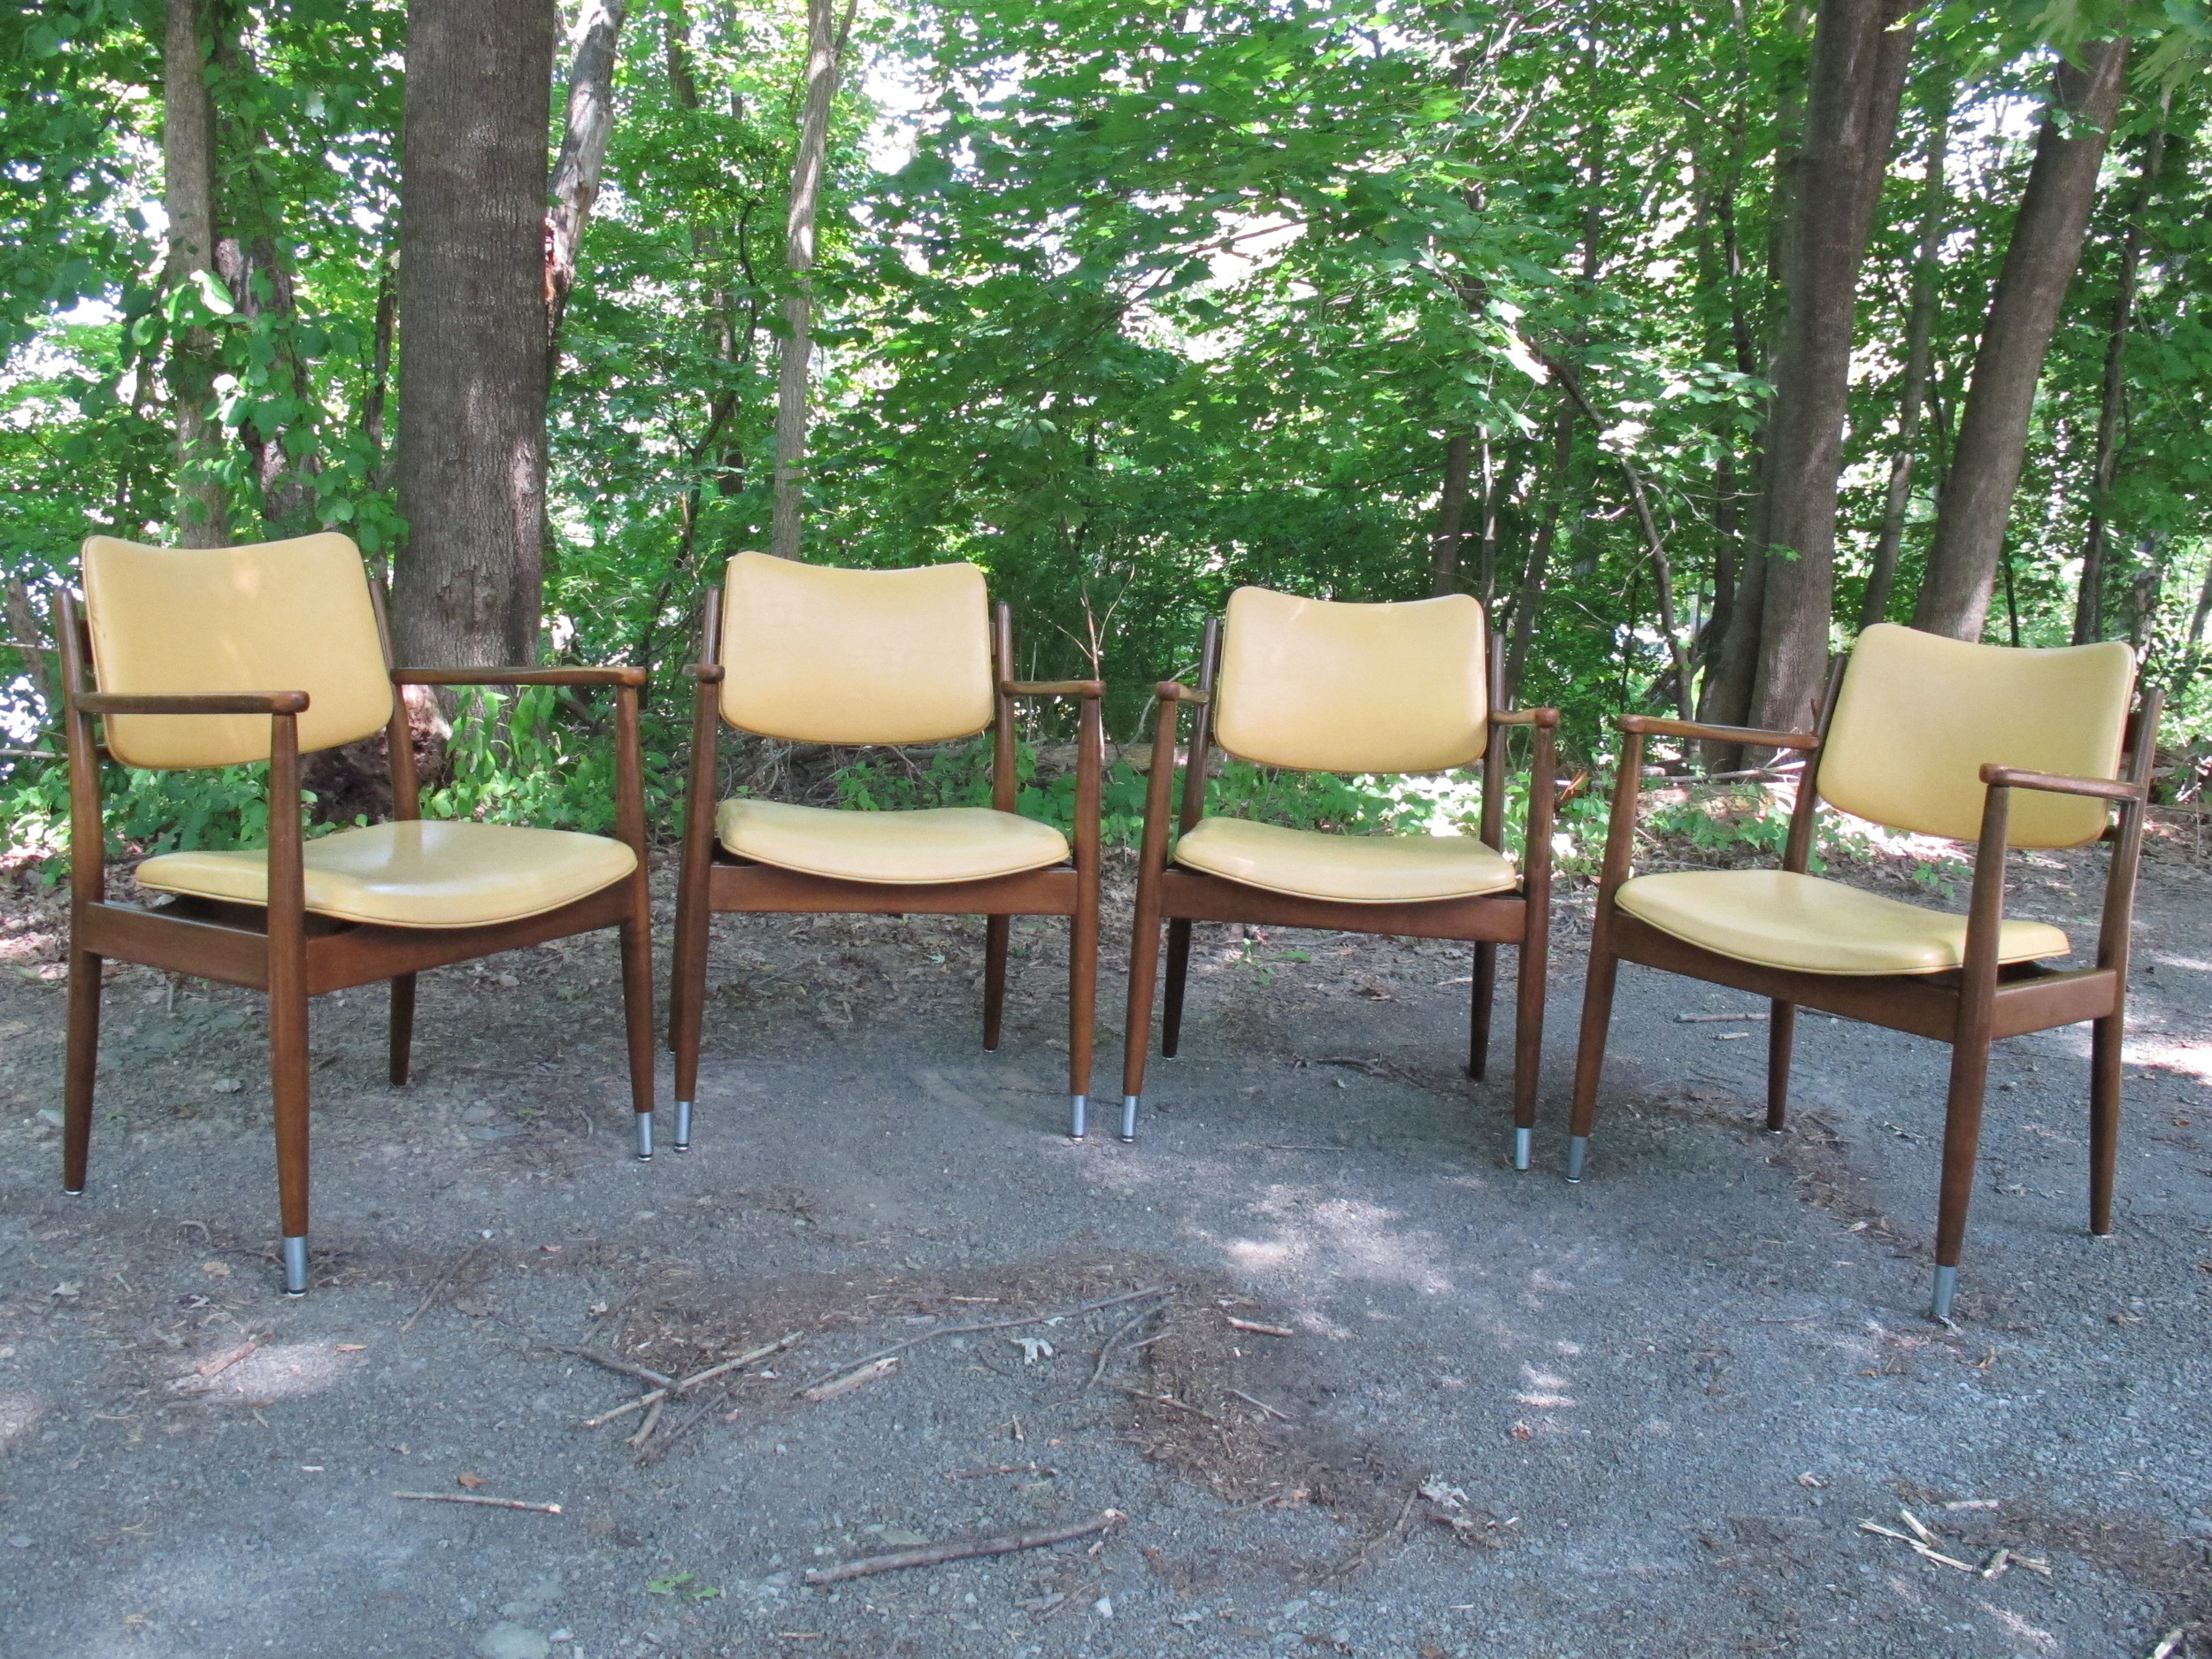 SET OF DANISH MODERN STYLE ARMCHAIRS